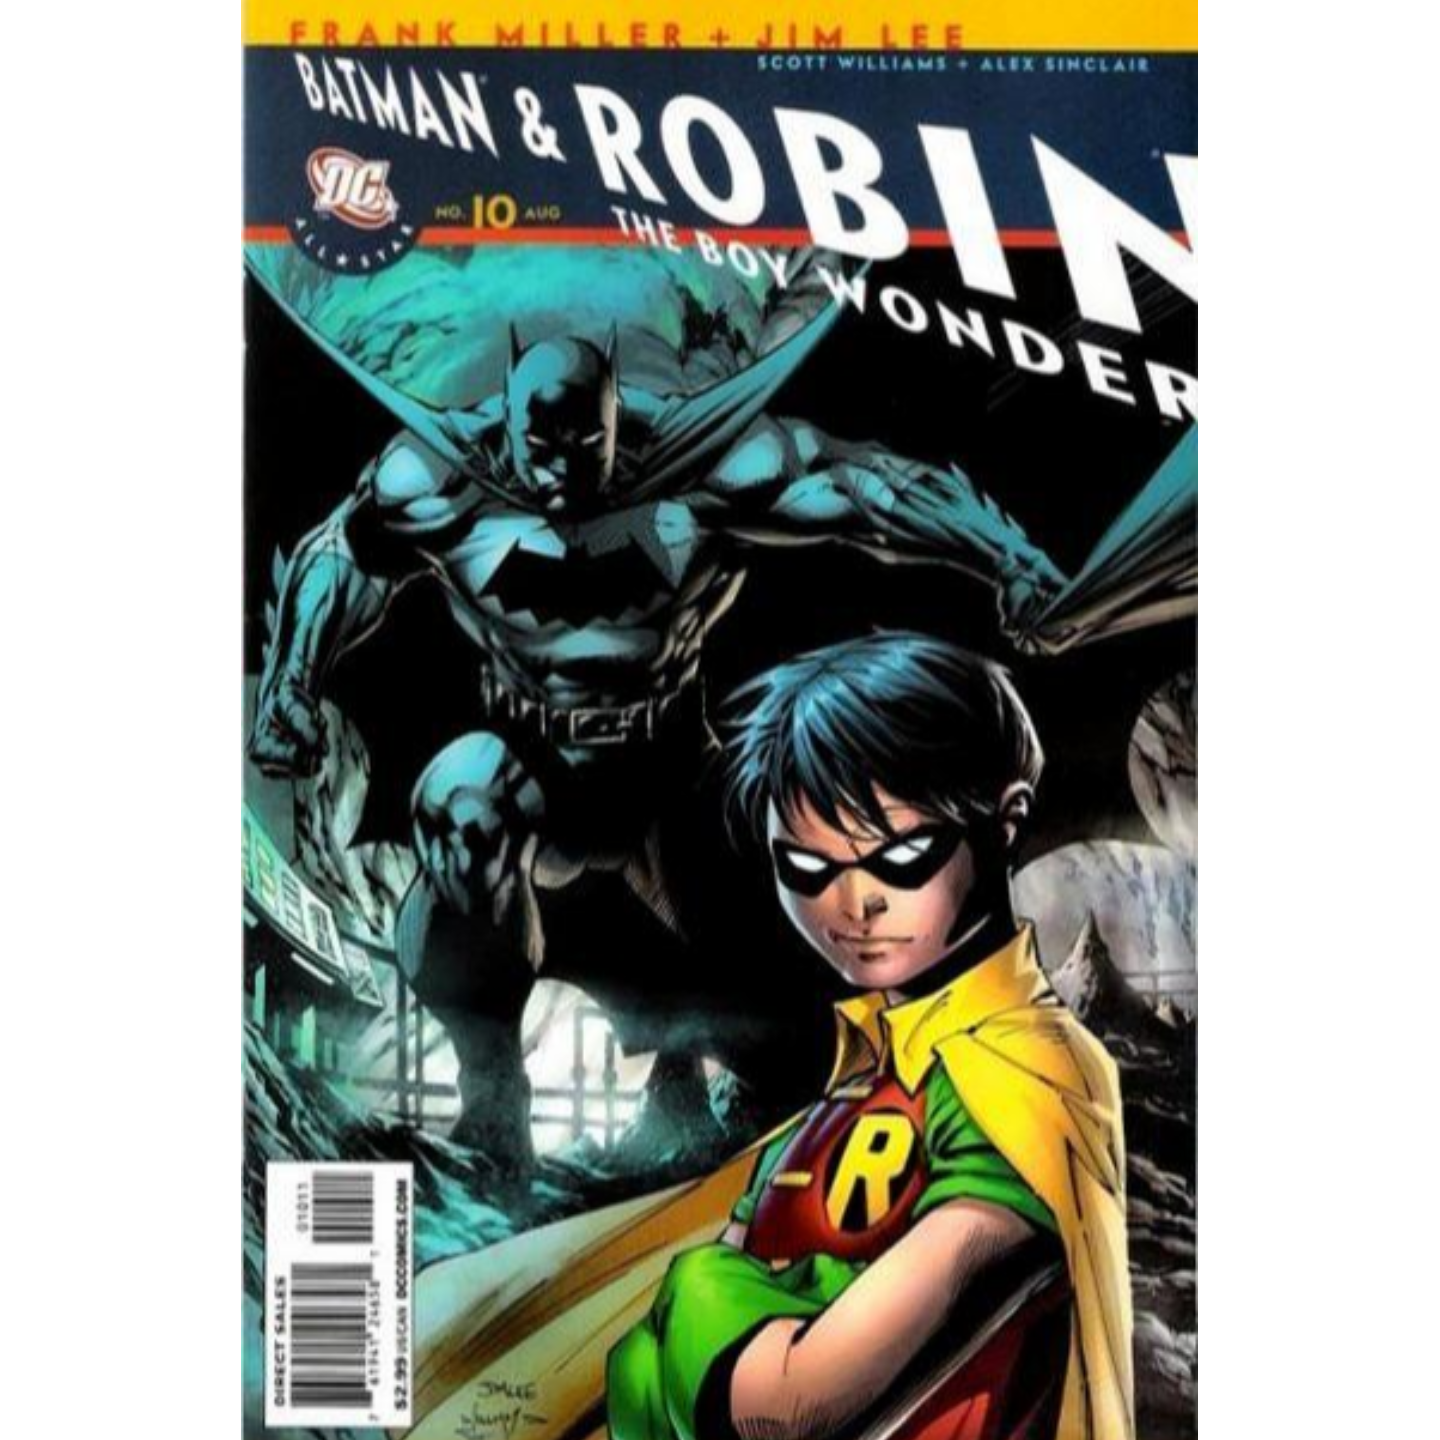 ALL STAR BATMAN AND ROBIN, THE BOY WONDER #1 - #10